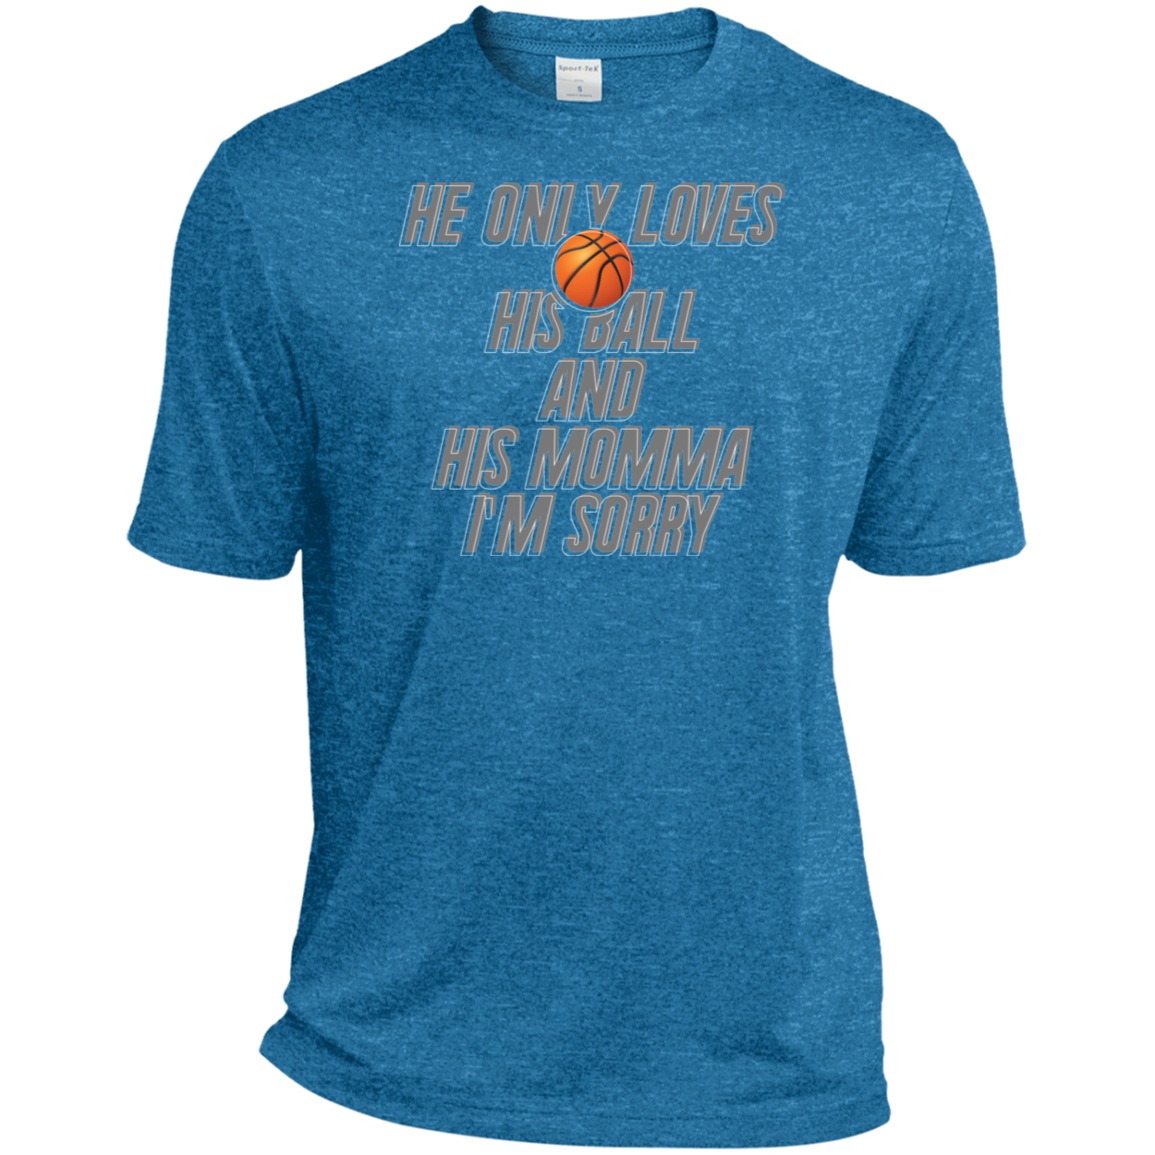 He Only Loves His Basketball and His Momma v1 Sport-Tek Heather Dri-Fit Moisture-Wicking T-Shirt